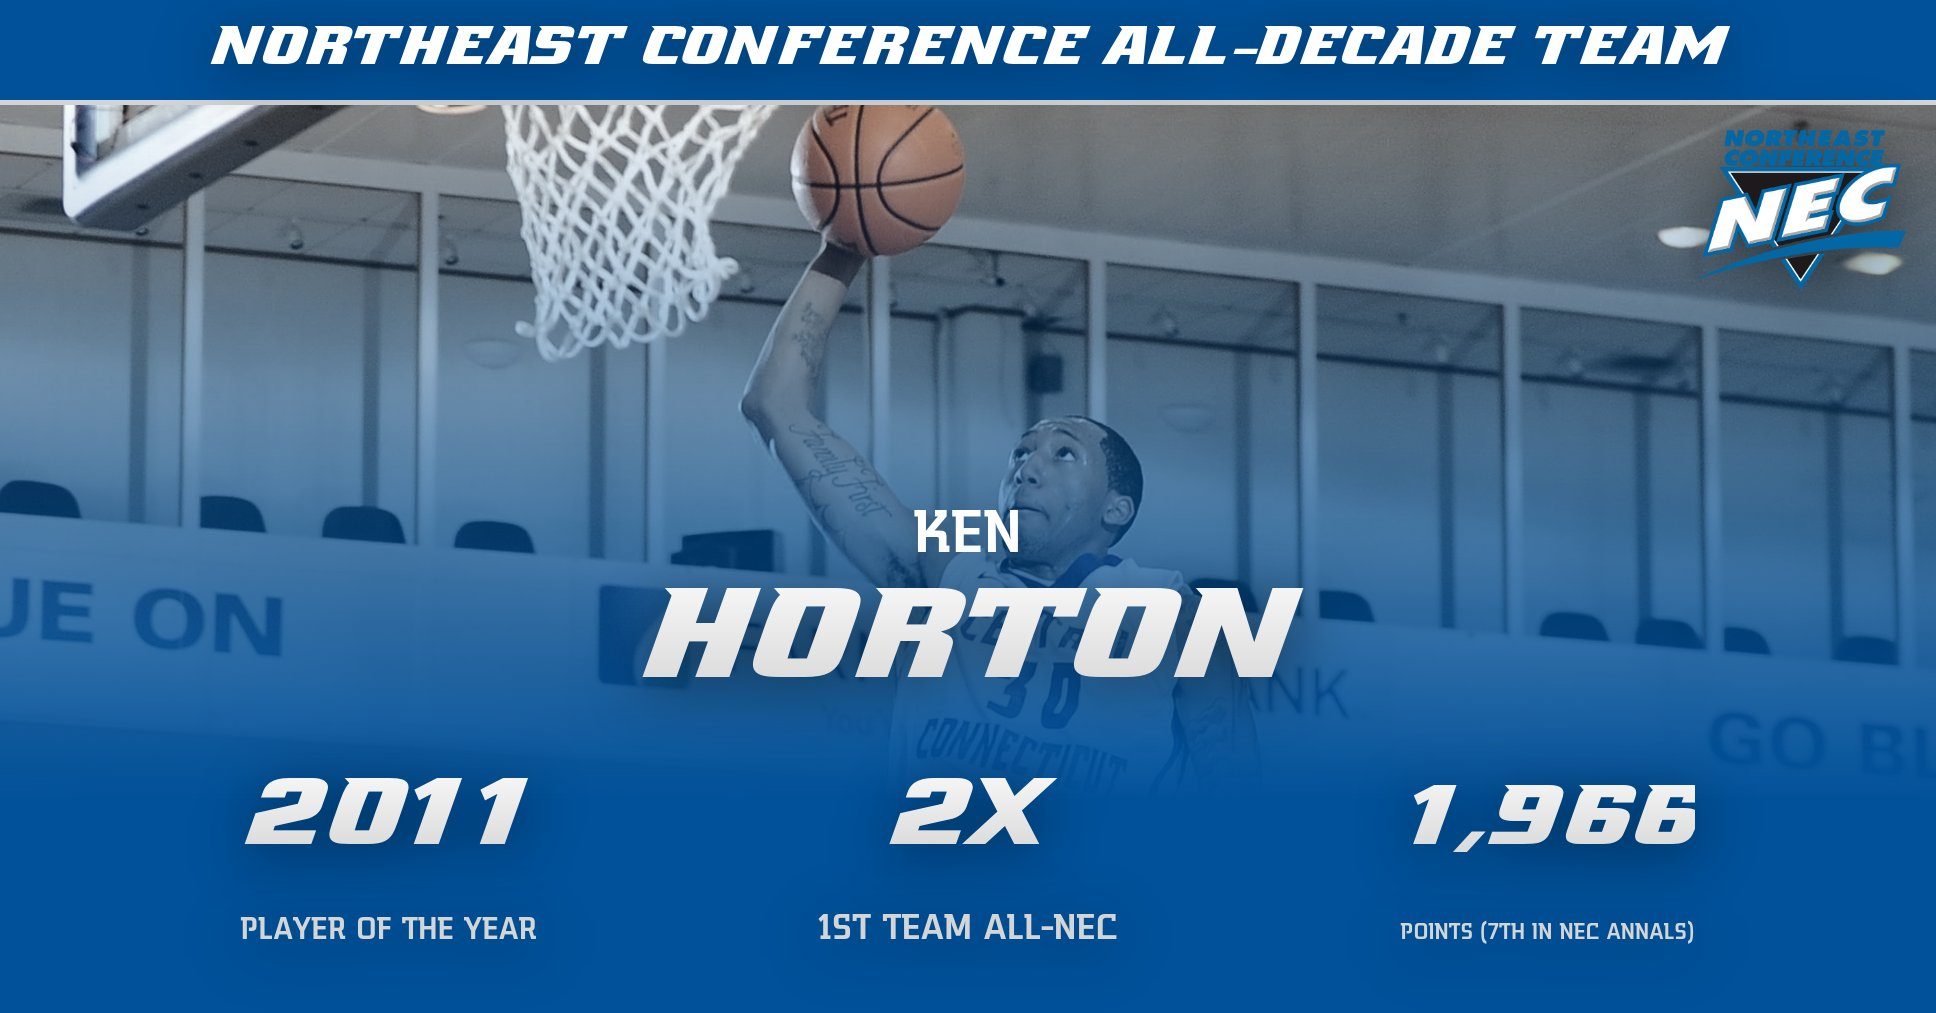 Ken Horton Named to Northeast Conference All-Decade Team